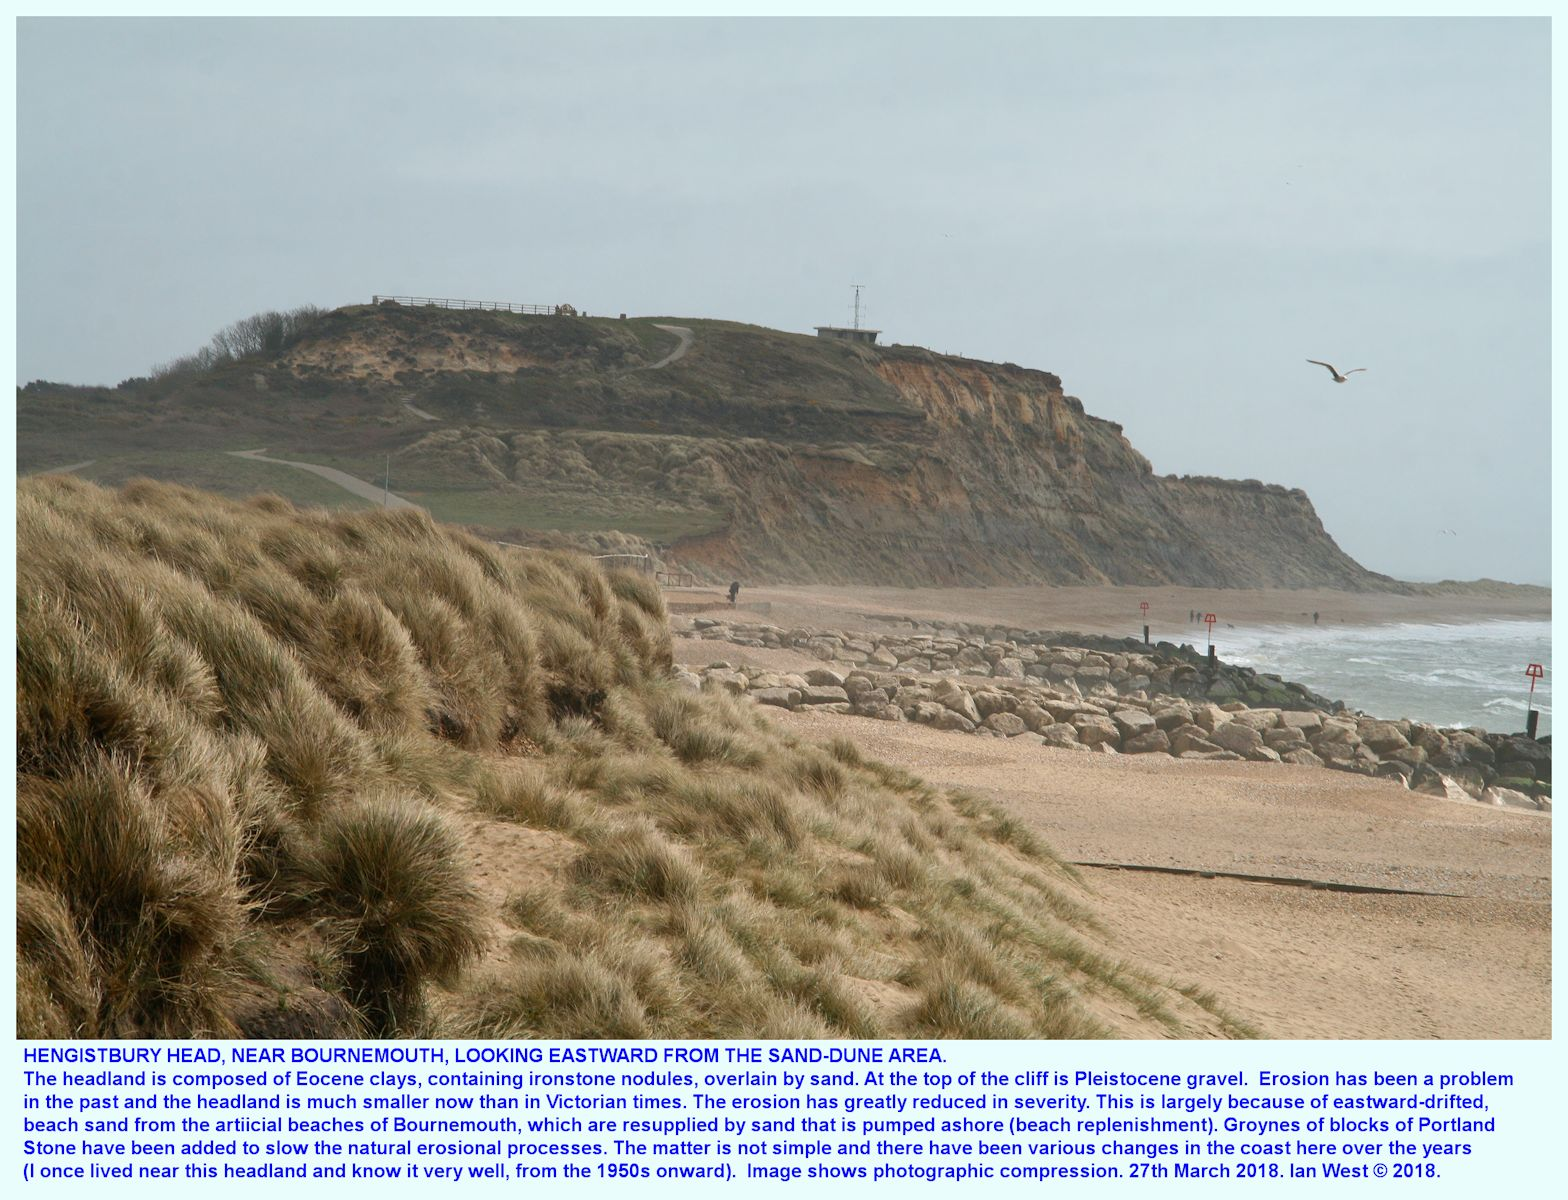 A telephoto view of Hengistbury Head, Bournemouth, Dorset, looking eastward from the sand-dunes, 27th April 2018